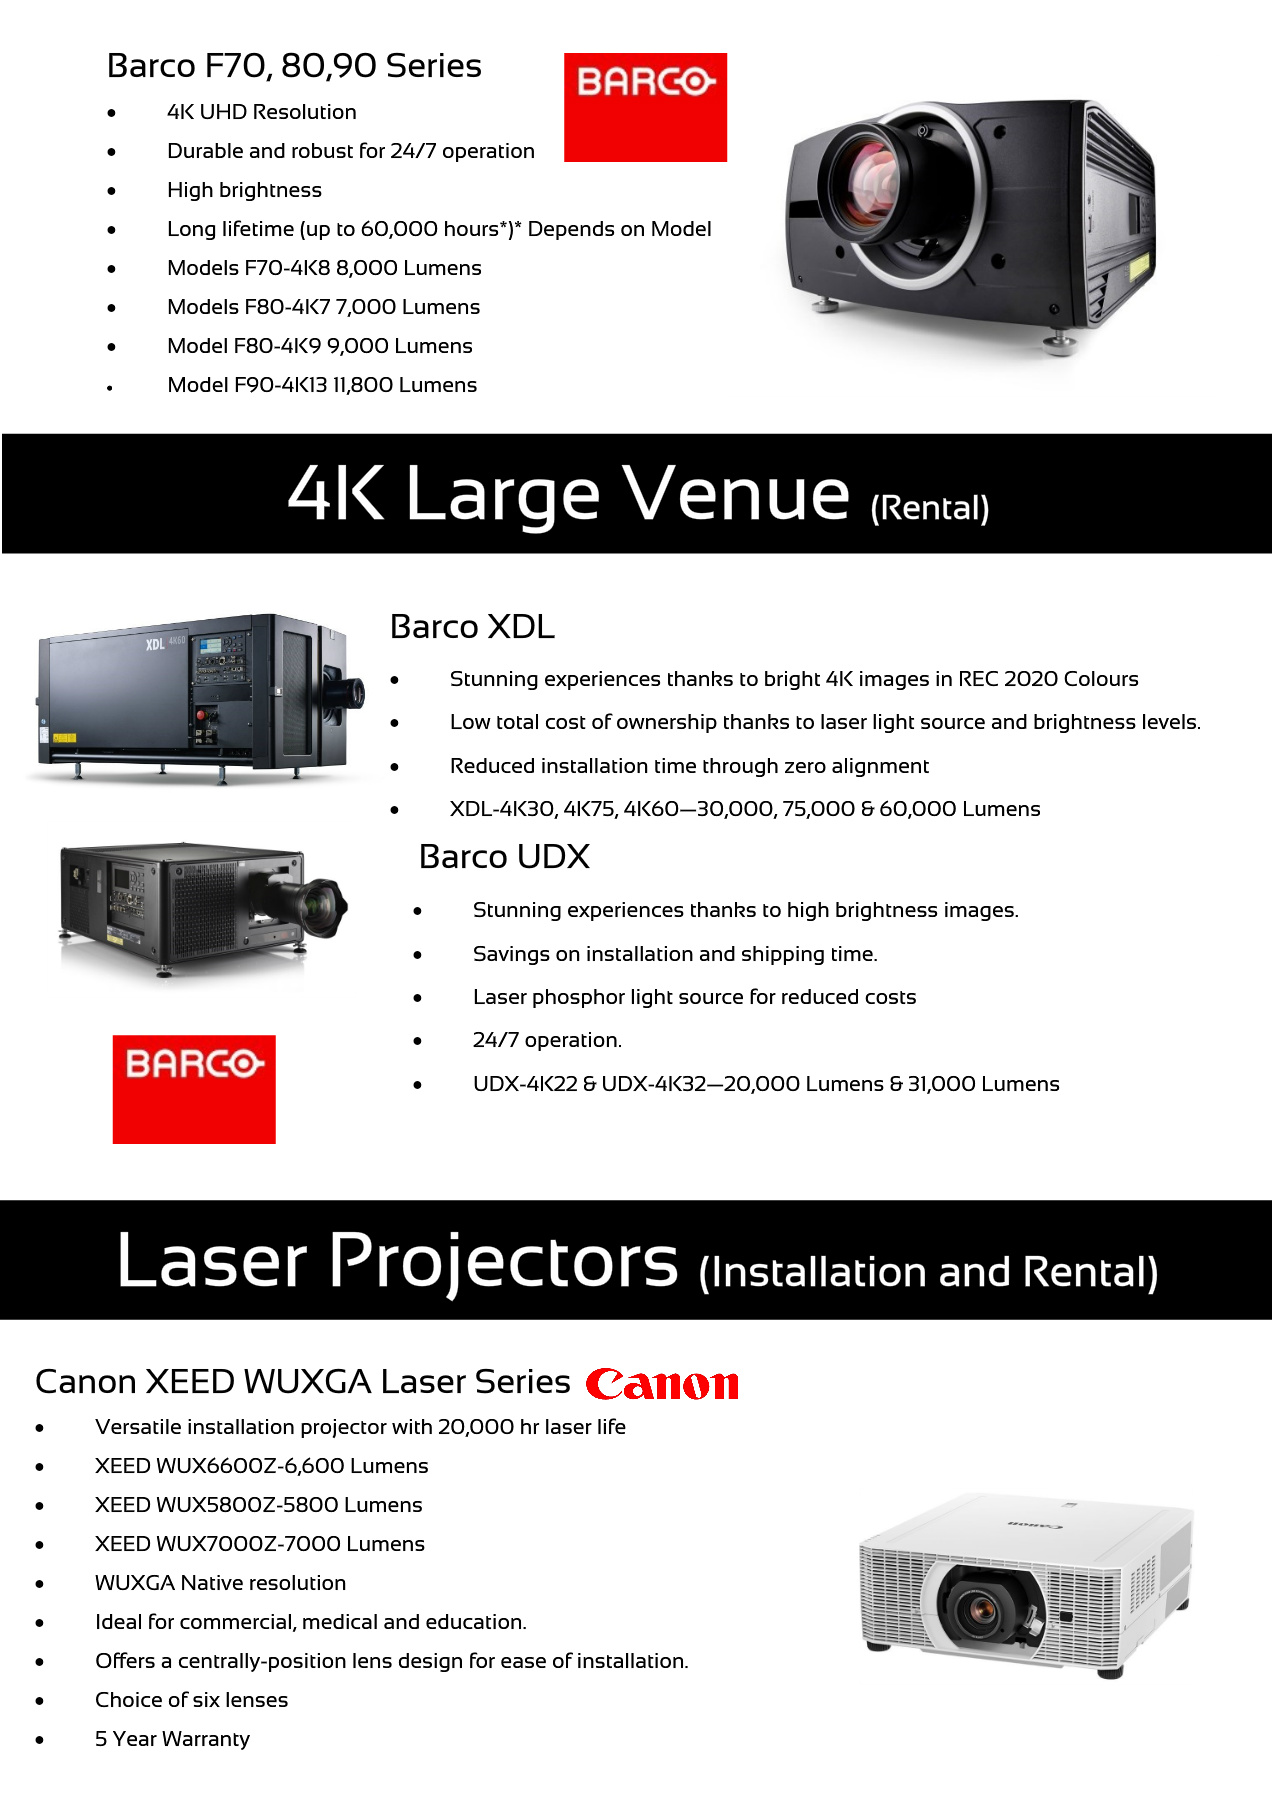 Projectors, Screens & Image Processing Pages 1 - 10 - Text Version